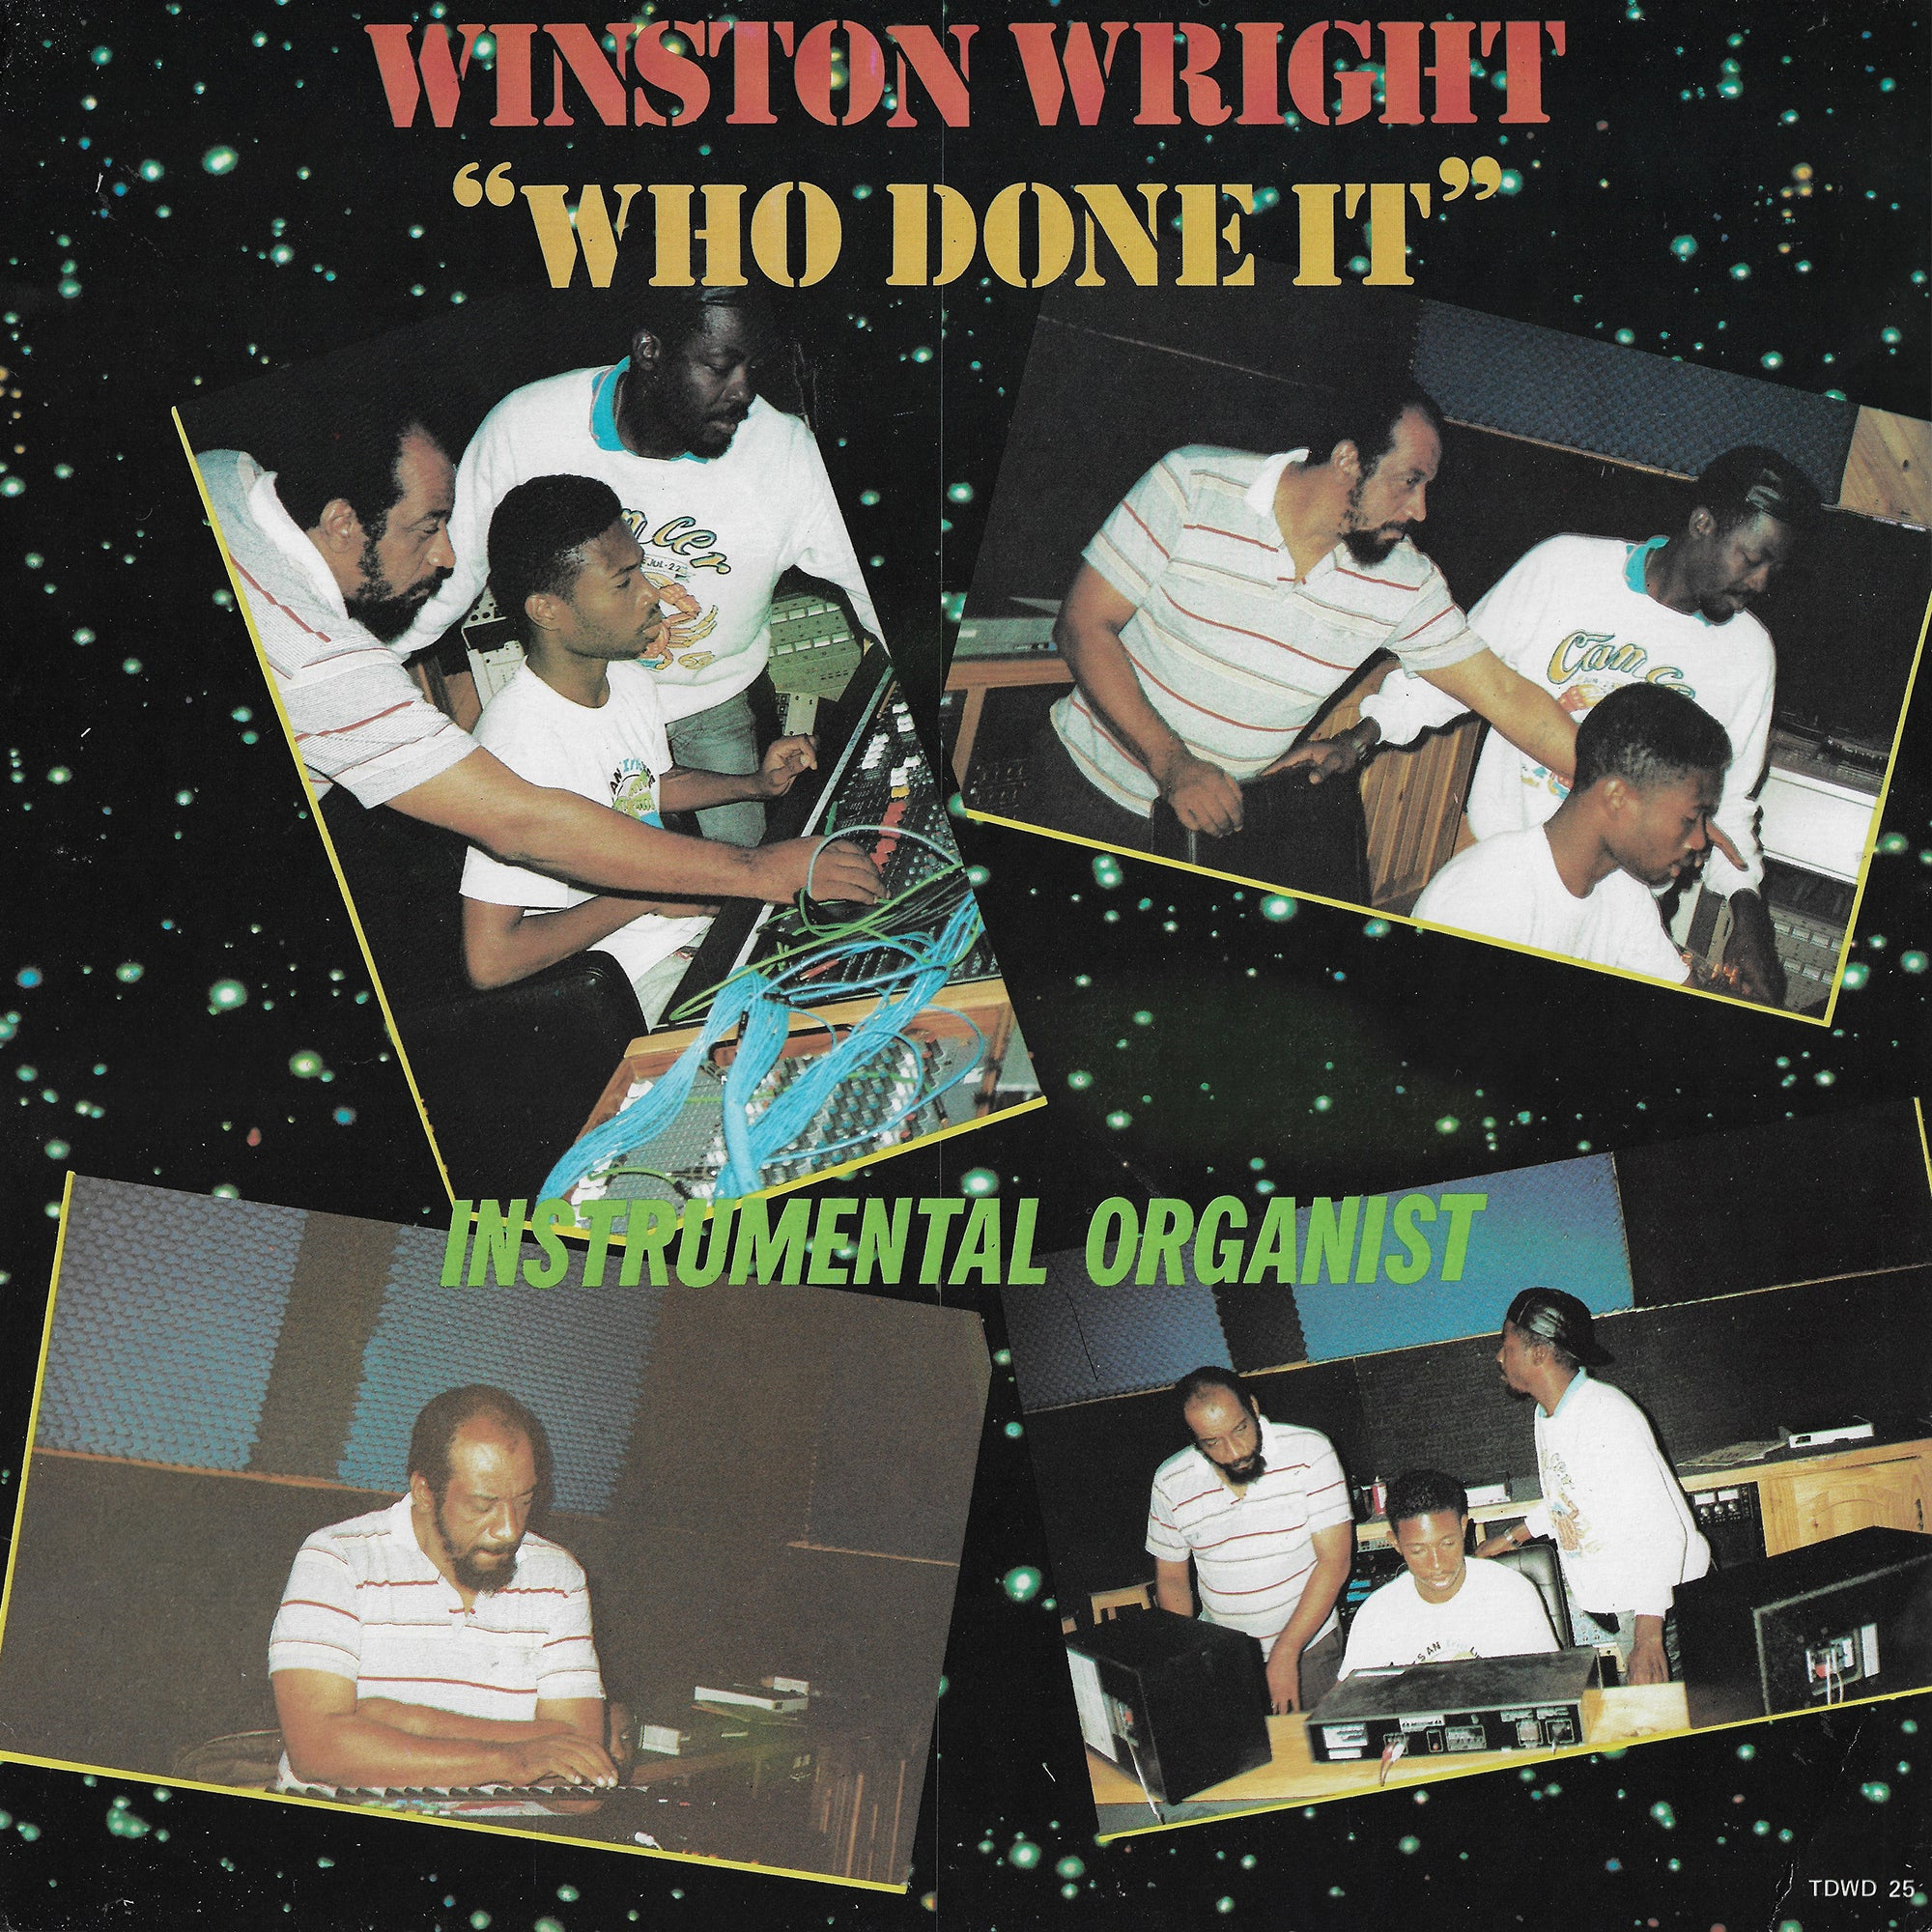 Winston Wright - Who Done It